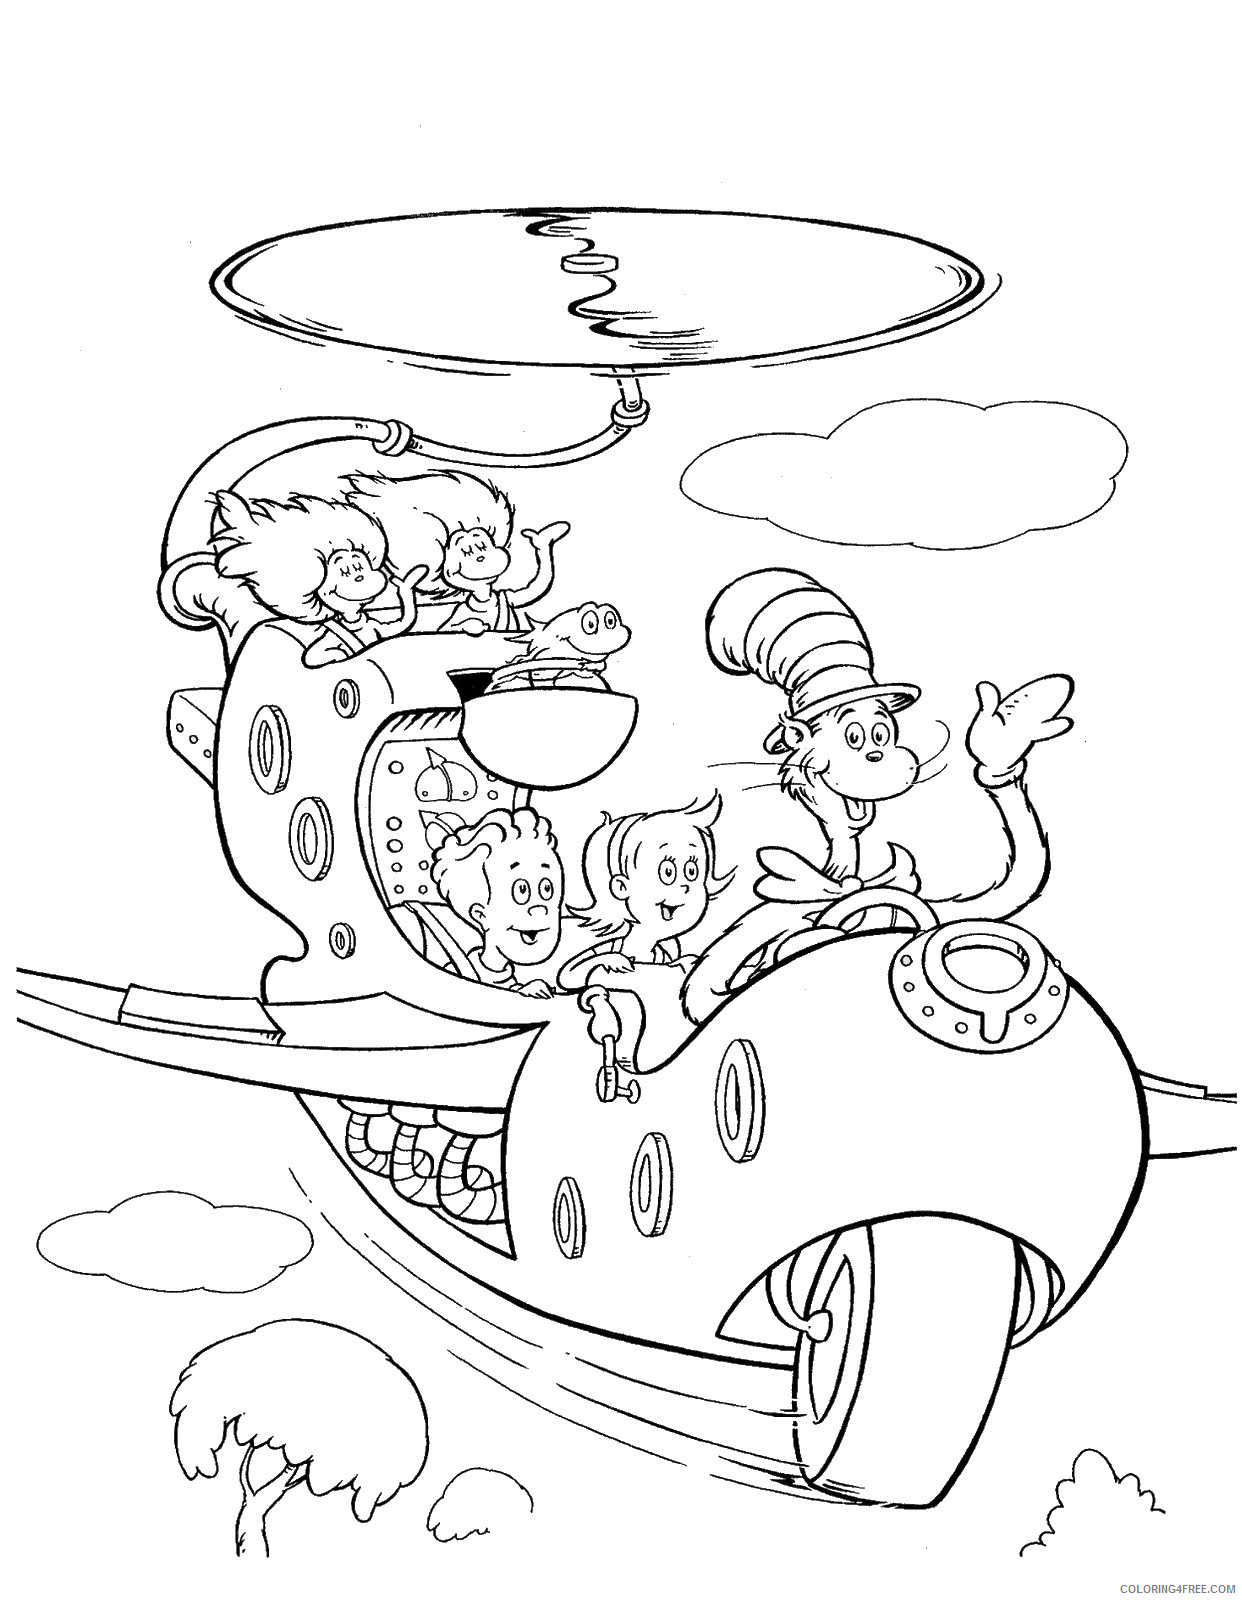 The Cat In The Hat Coloring Pages Cartoons Cat Hat Cl 31 Printable 2020 6394 Coloring4free Coloring4free Com